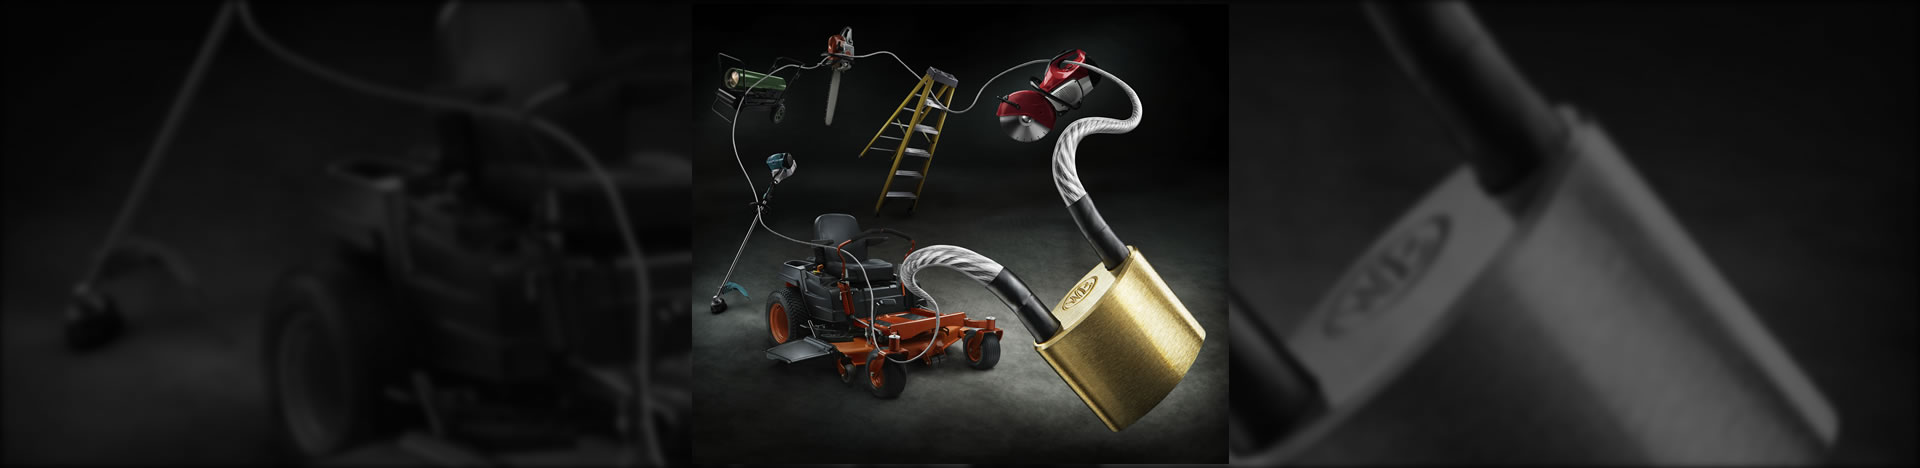 Customize and Accessorize your Padlocks